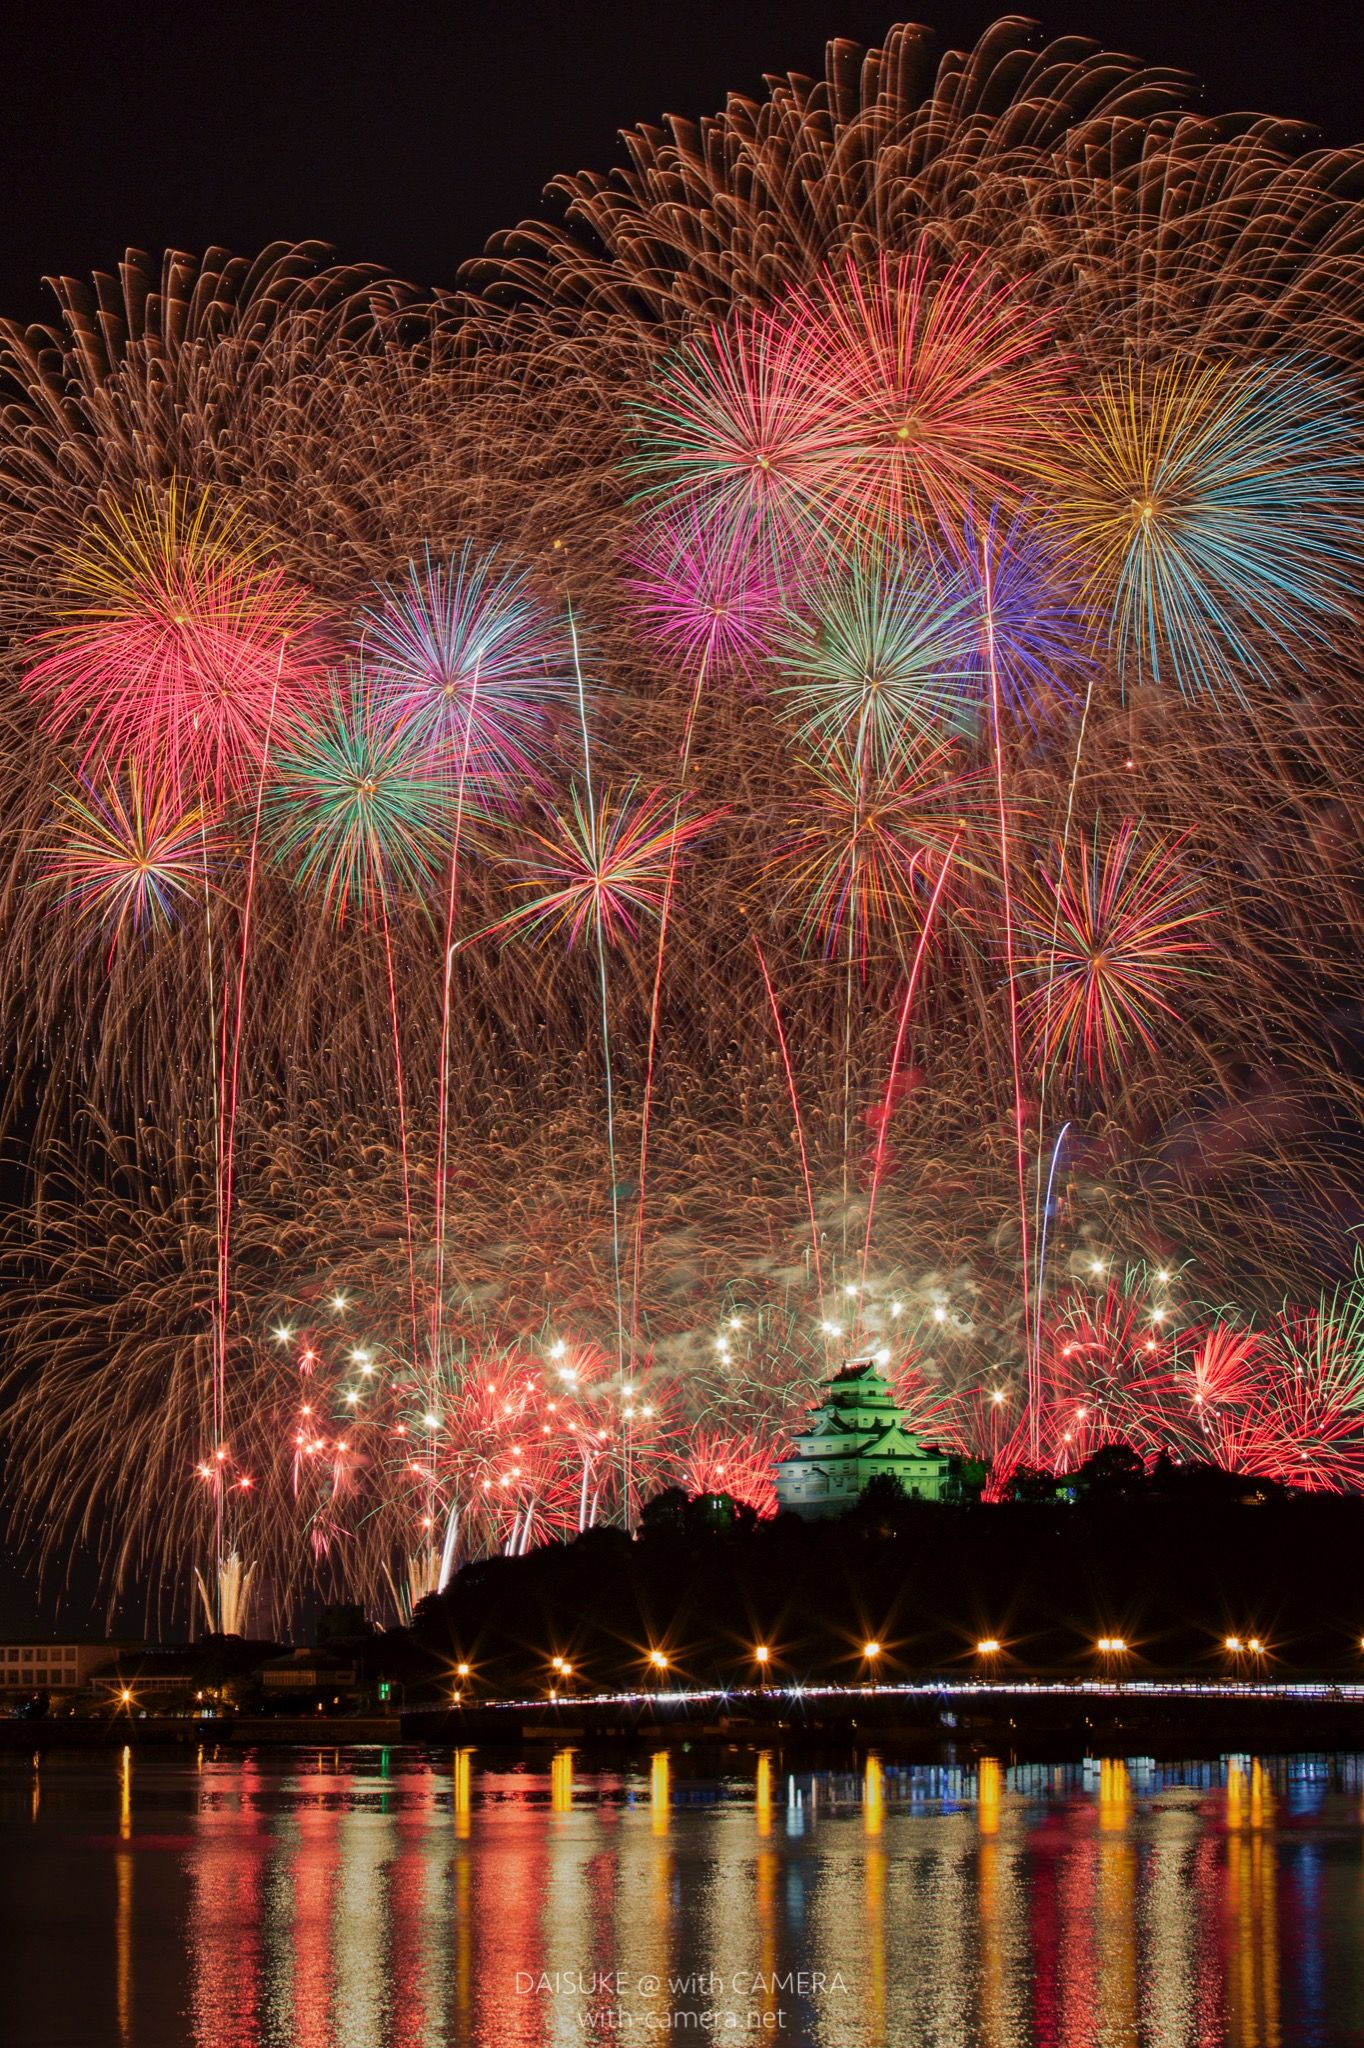 Pin by s chang on c in 2019 | Firework colors, Best